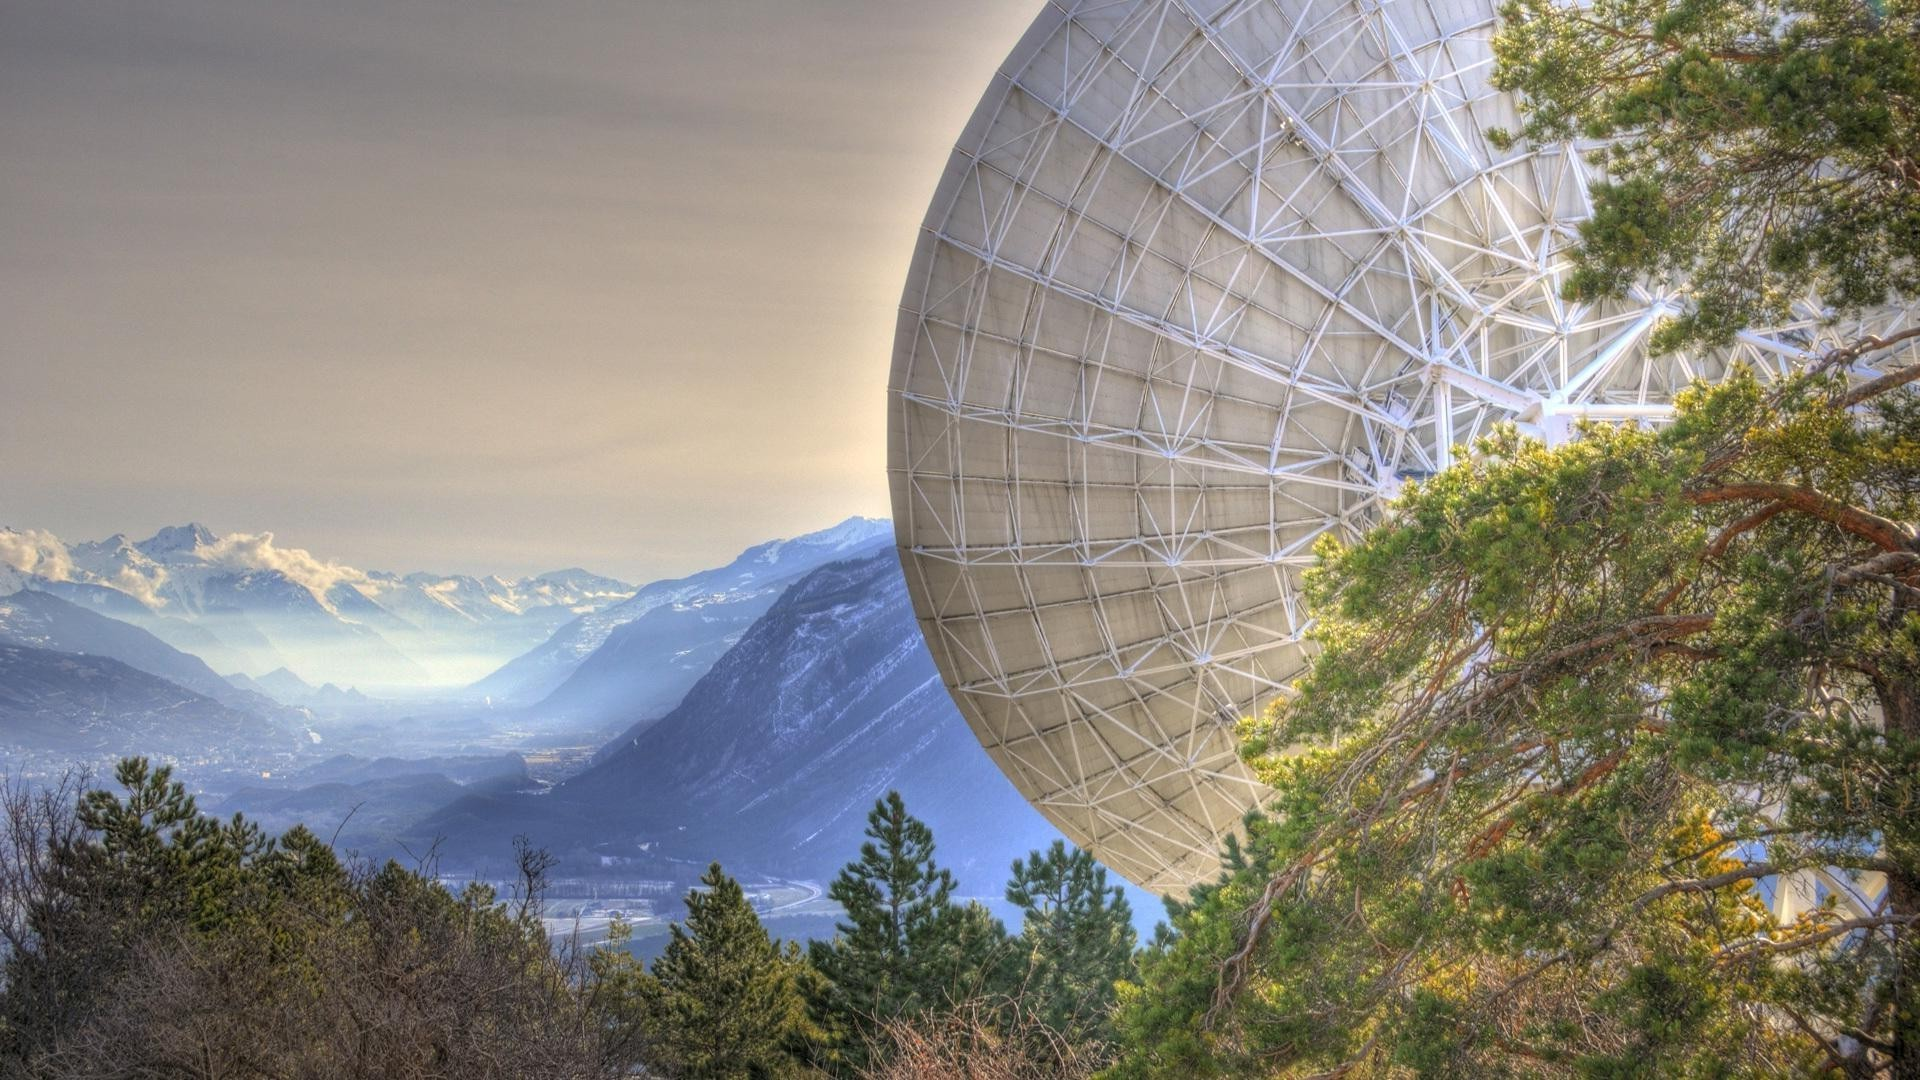 Mountains, sky, antenna, trees